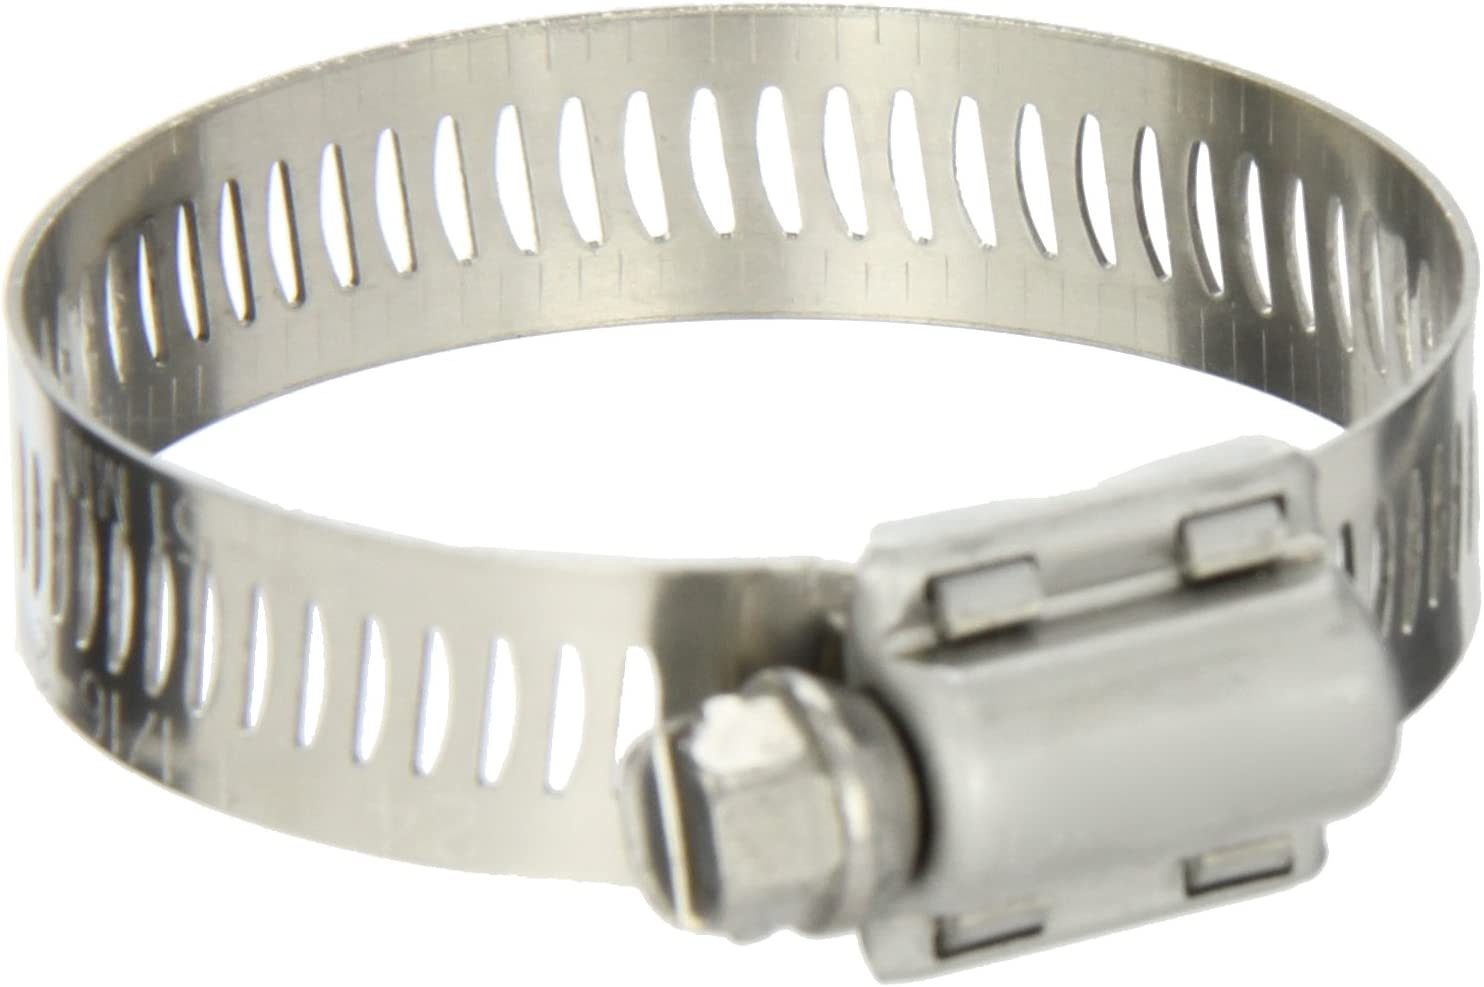 Pack of 10 Worm-Drive SAE Size 8 Breeze Power-Seal Stainless Steel Hose Clamp 1//2 to 29//32 Diameter Range 1//2 Bandwidth